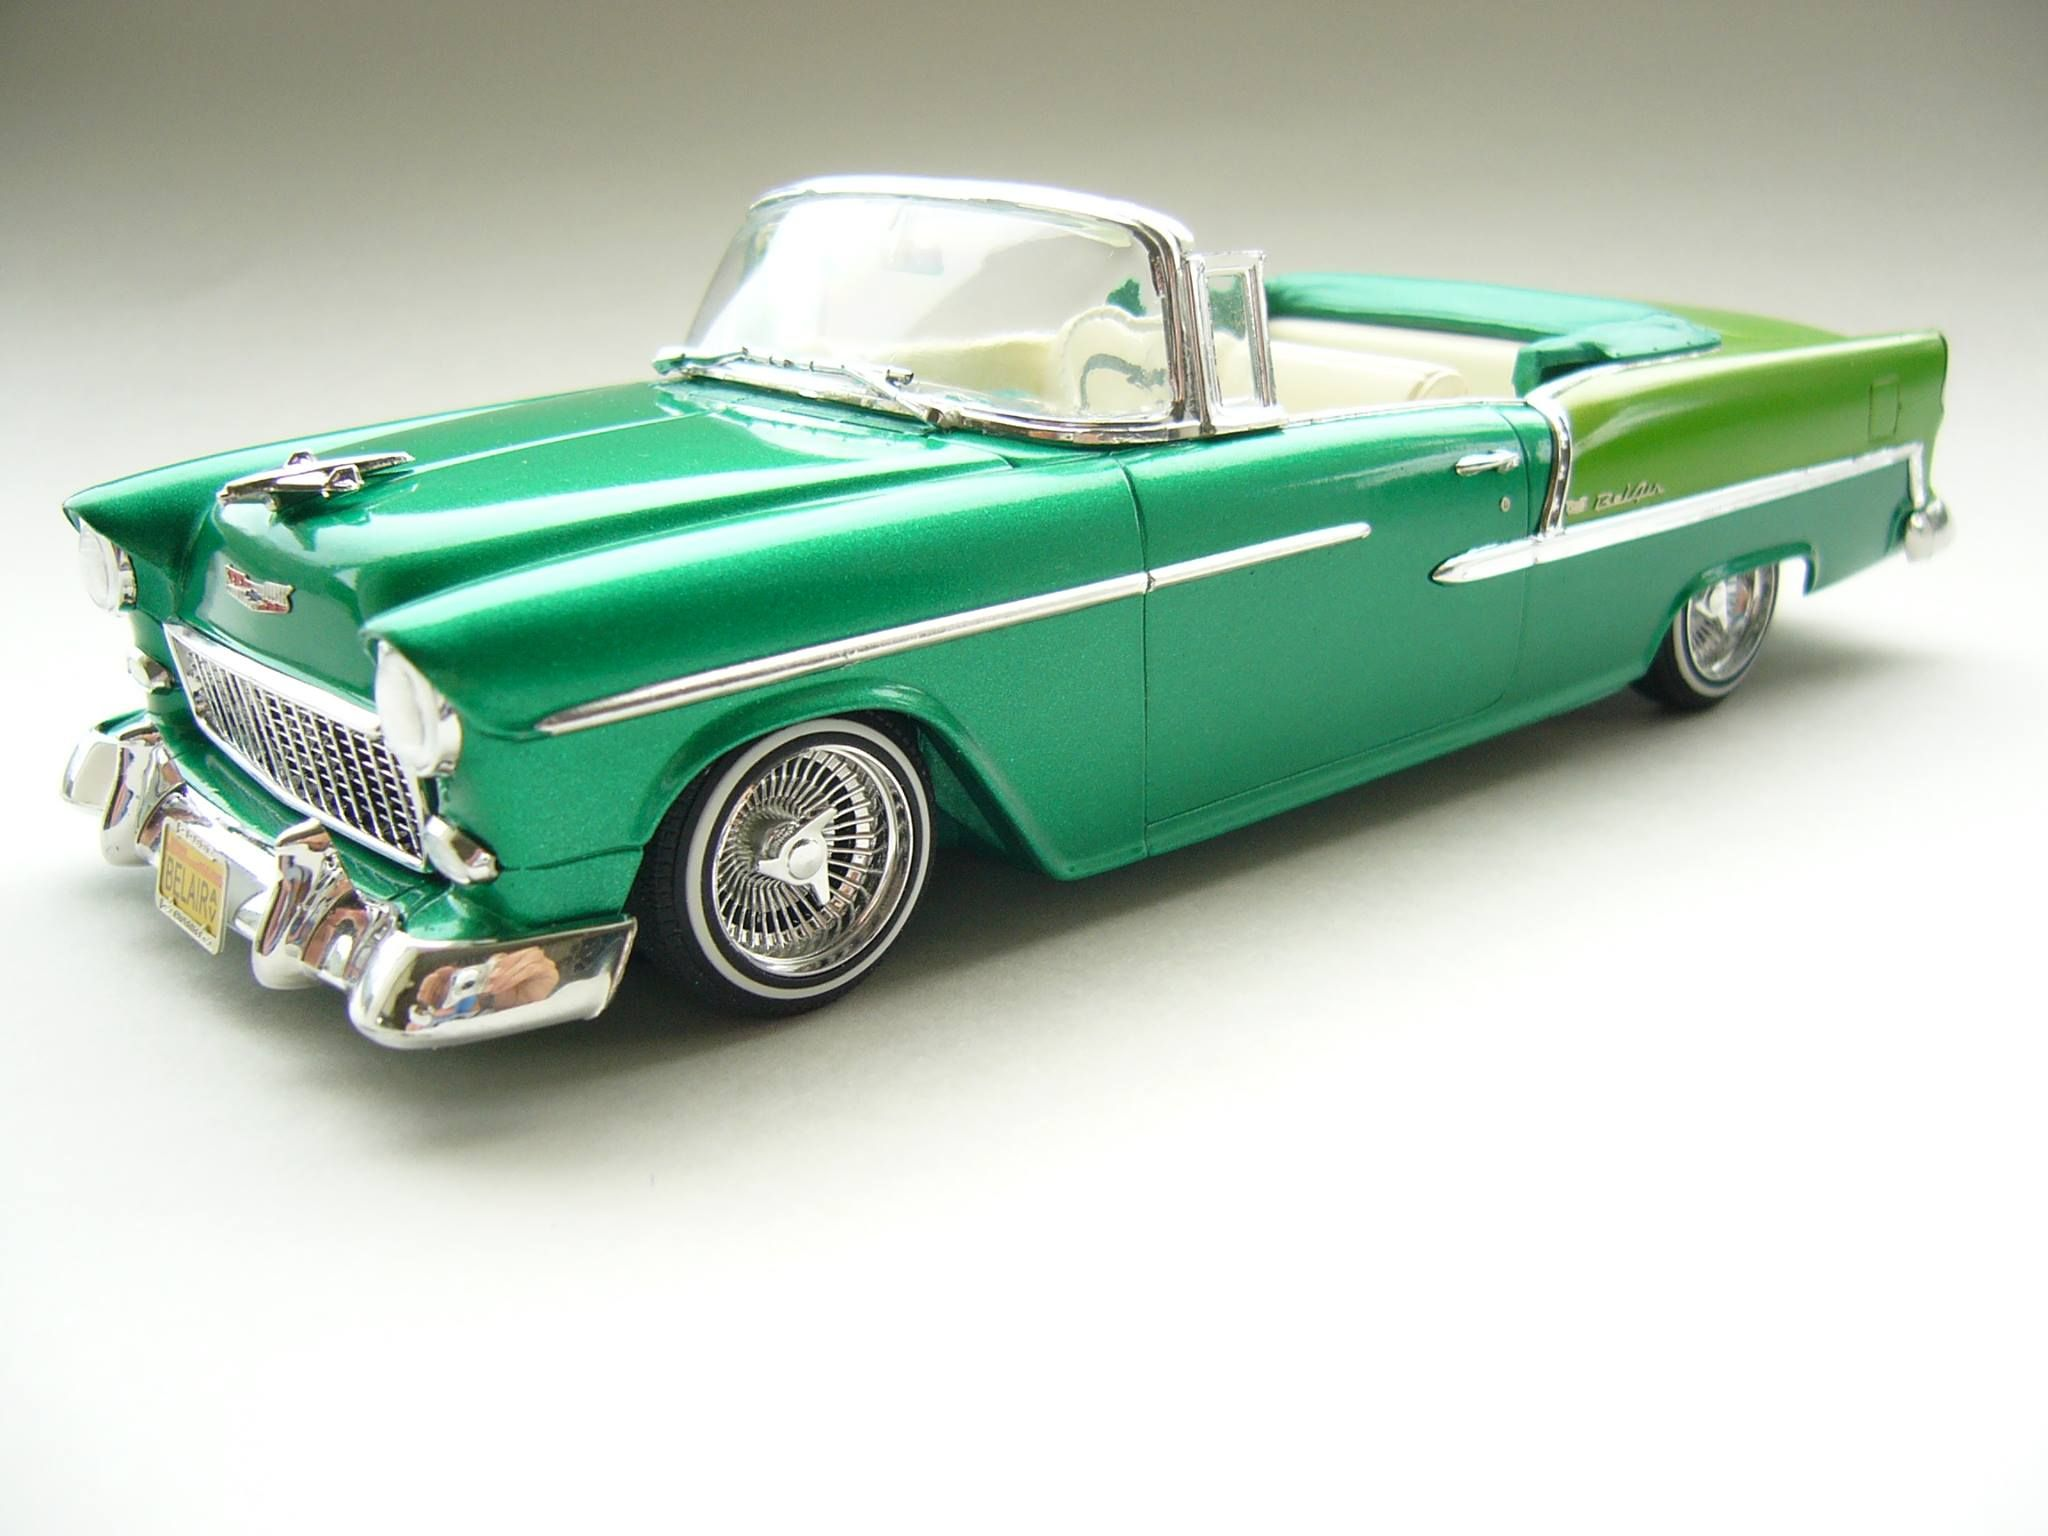 55 Chevy Bel Air convertible Lowrider model cars, Scale